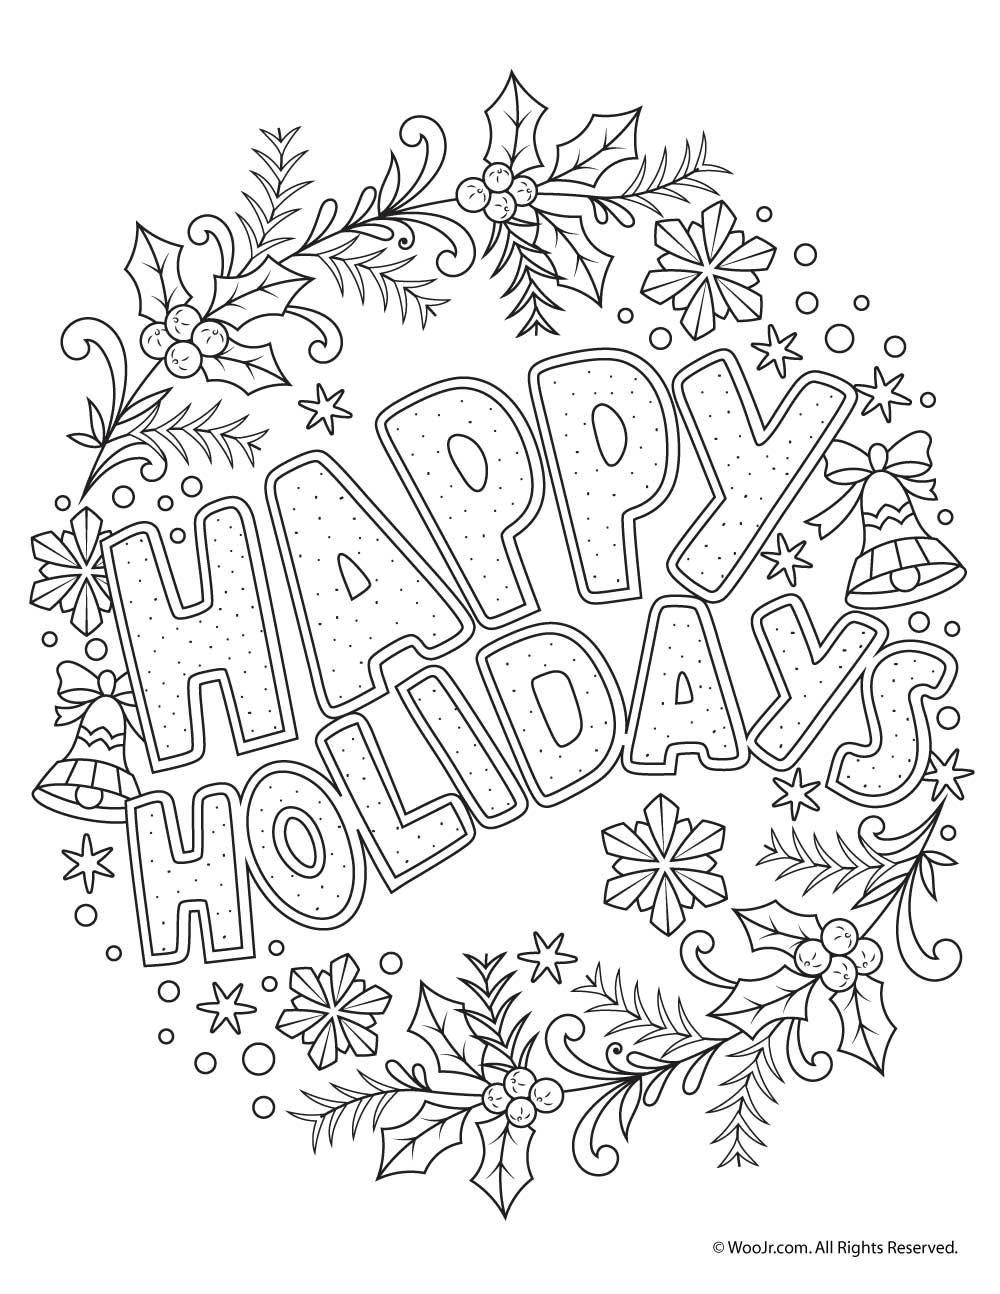 Happy Holidays Adult Coloring Freebie